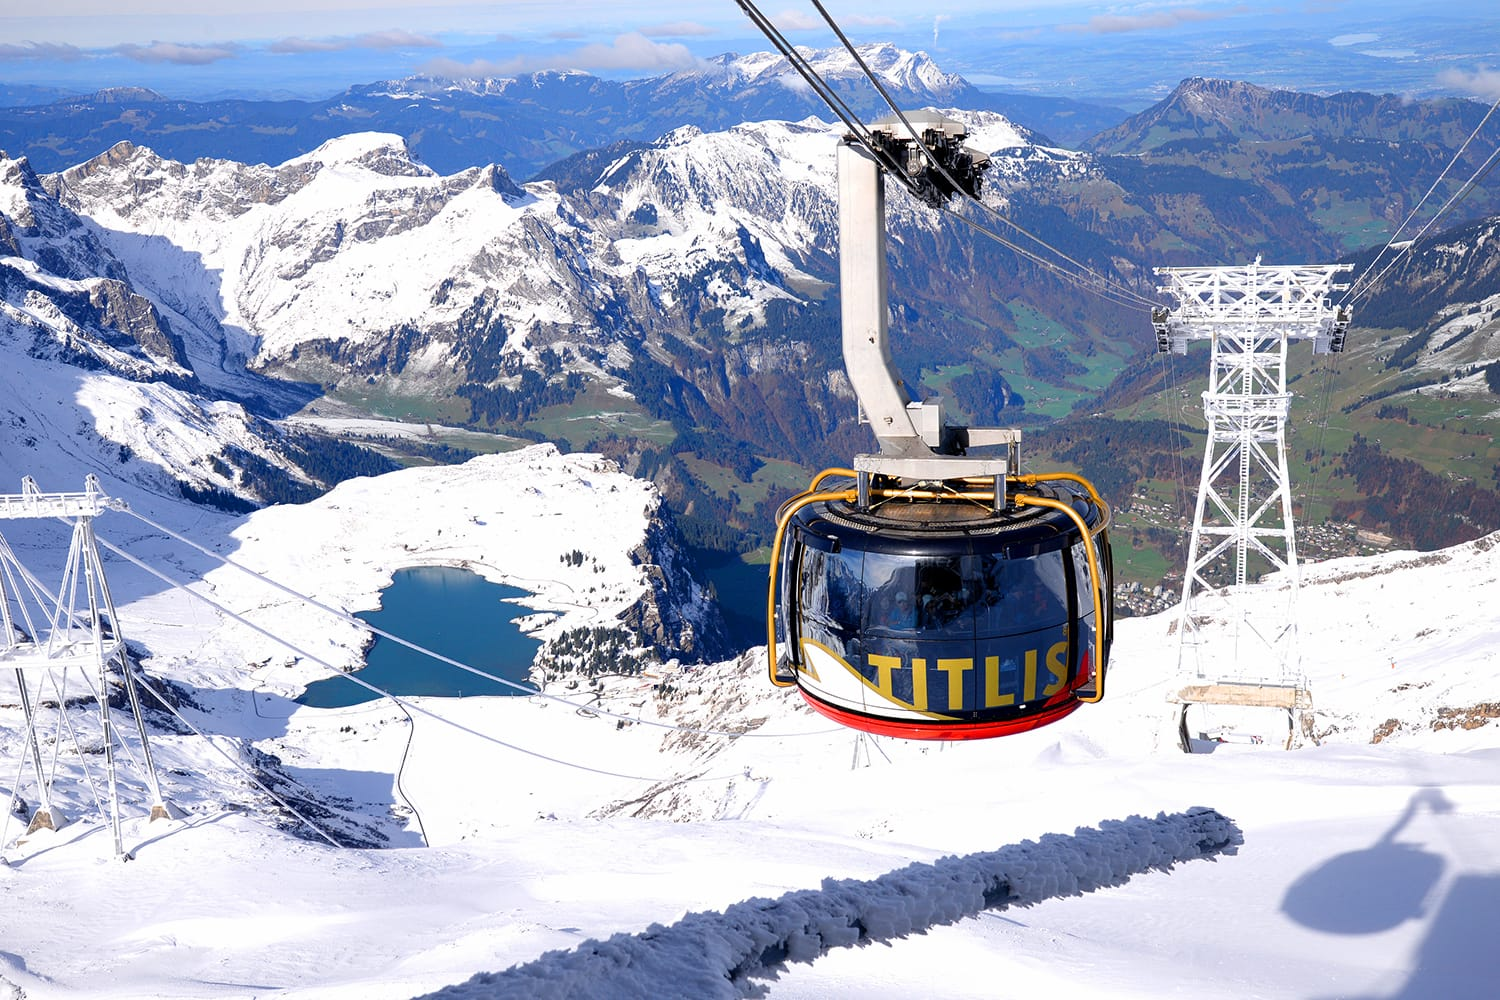 Titlis rotair The world's first revolving gondola transports from the middle station at Stand up to the mountain Titlis in Switzerland